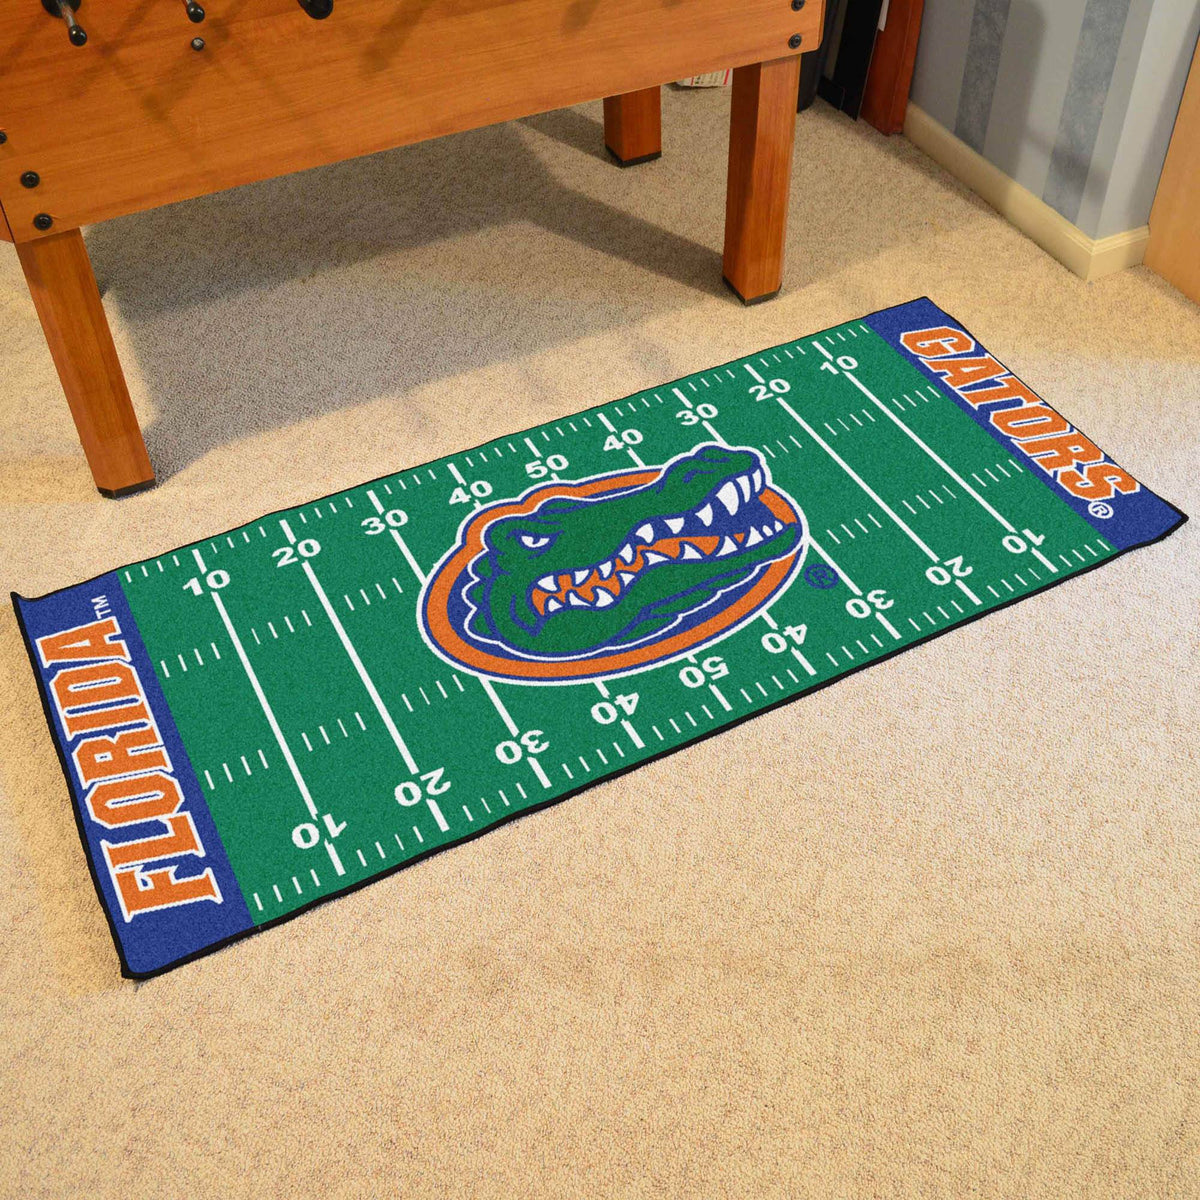 Collegiate - Football Field Runner Collegiate Mats, Rectangular Mats, Football Field Runner, Collegiate, Home Fan Mats Florida